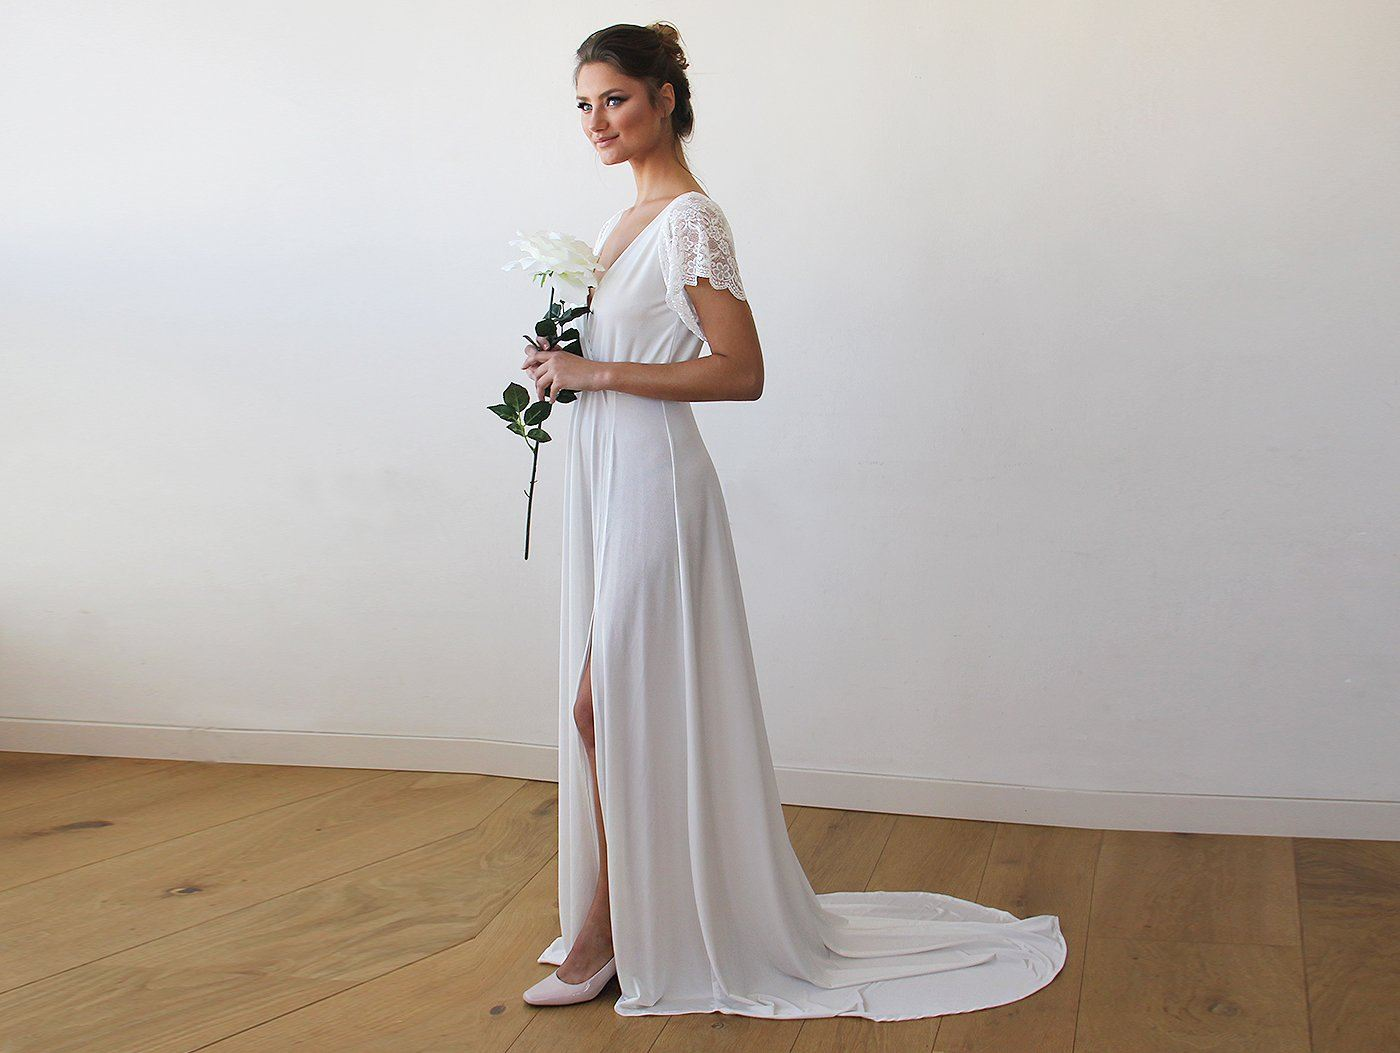 Ivory Wrap Wedding Gown With Short Lace Sleeves And Train 1163 - Blushfashion